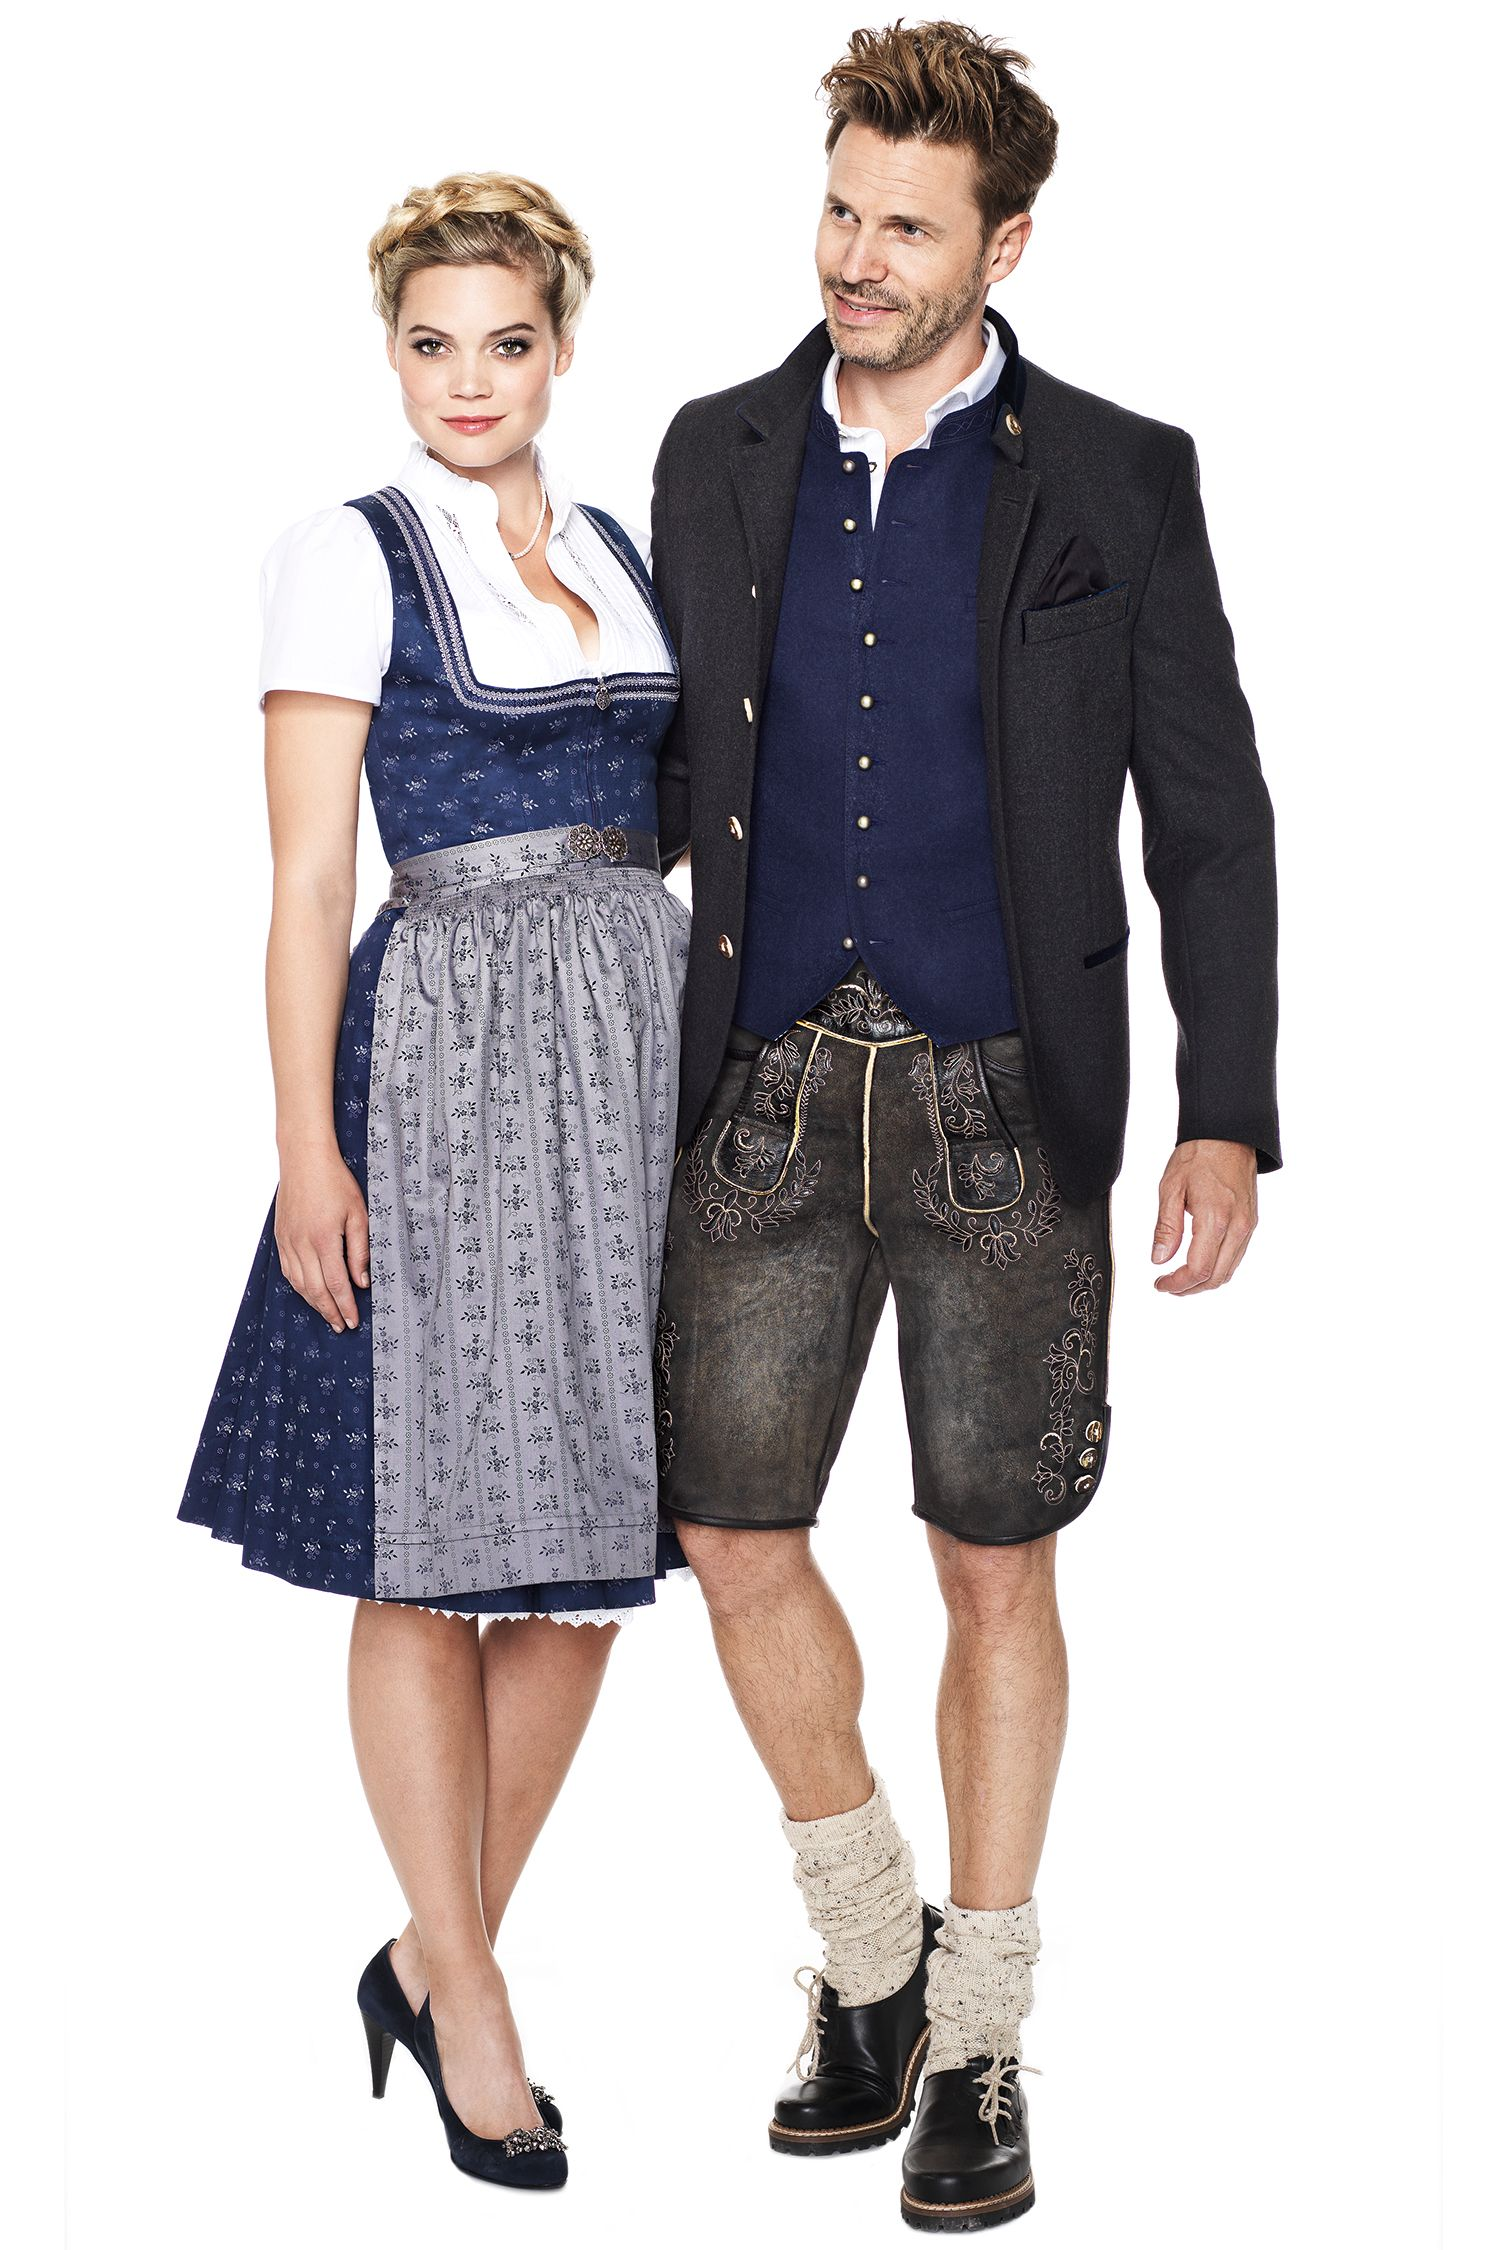 angermaier trachtenangermaier tracht dirndl lederhose gilet weste trachtenweste. Black Bedroom Furniture Sets. Home Design Ideas